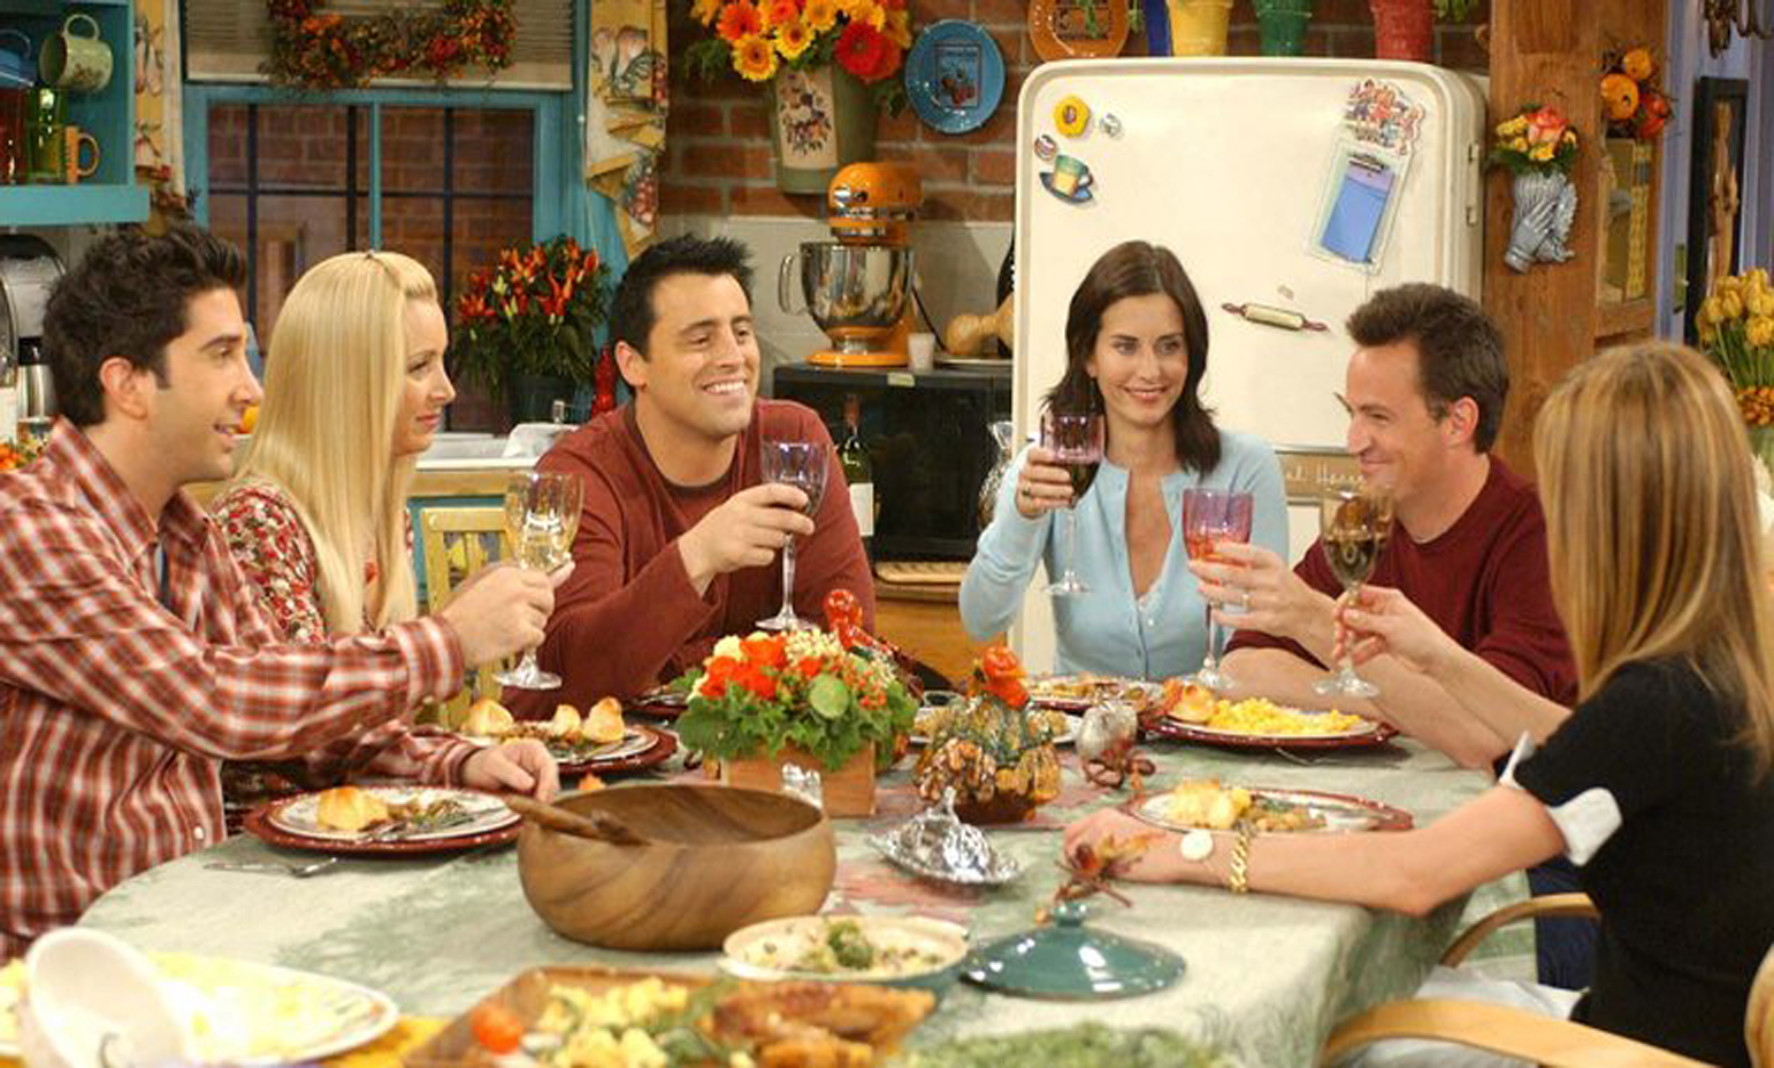 'Friends' back: Reunion special on HBO Max is now official